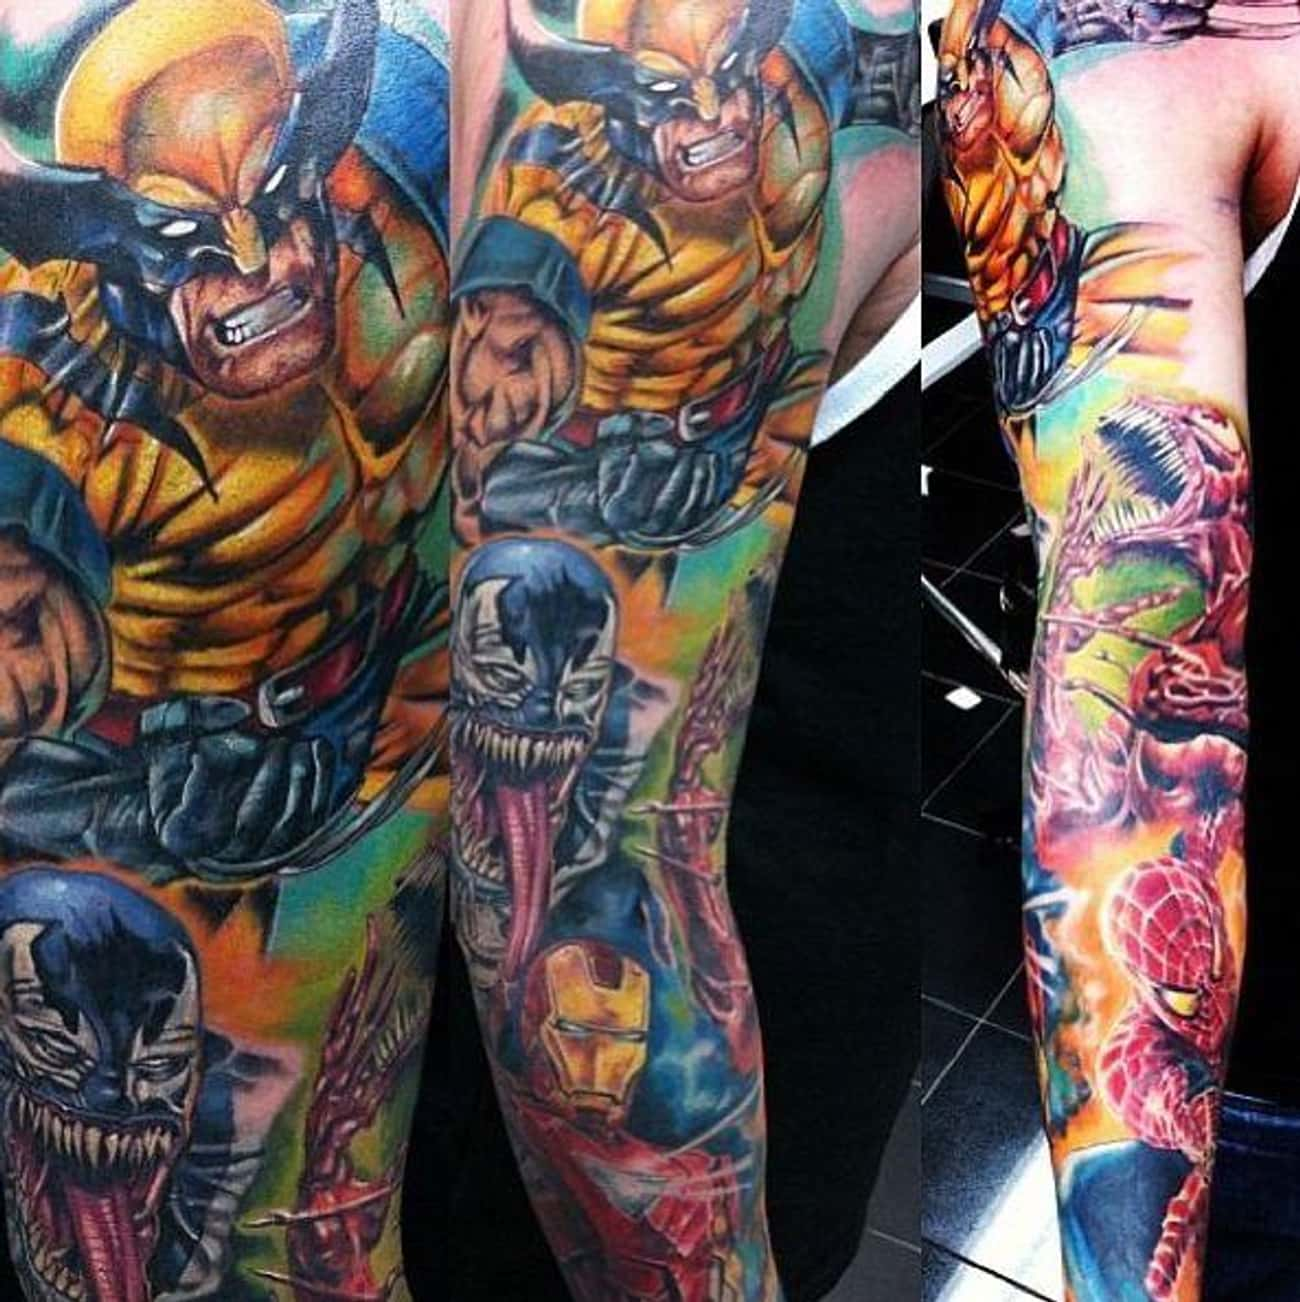 Wolverine/Venom/Spiderman is listed (or ranked) 4 on the list The Best Marvel Comics Tattoos